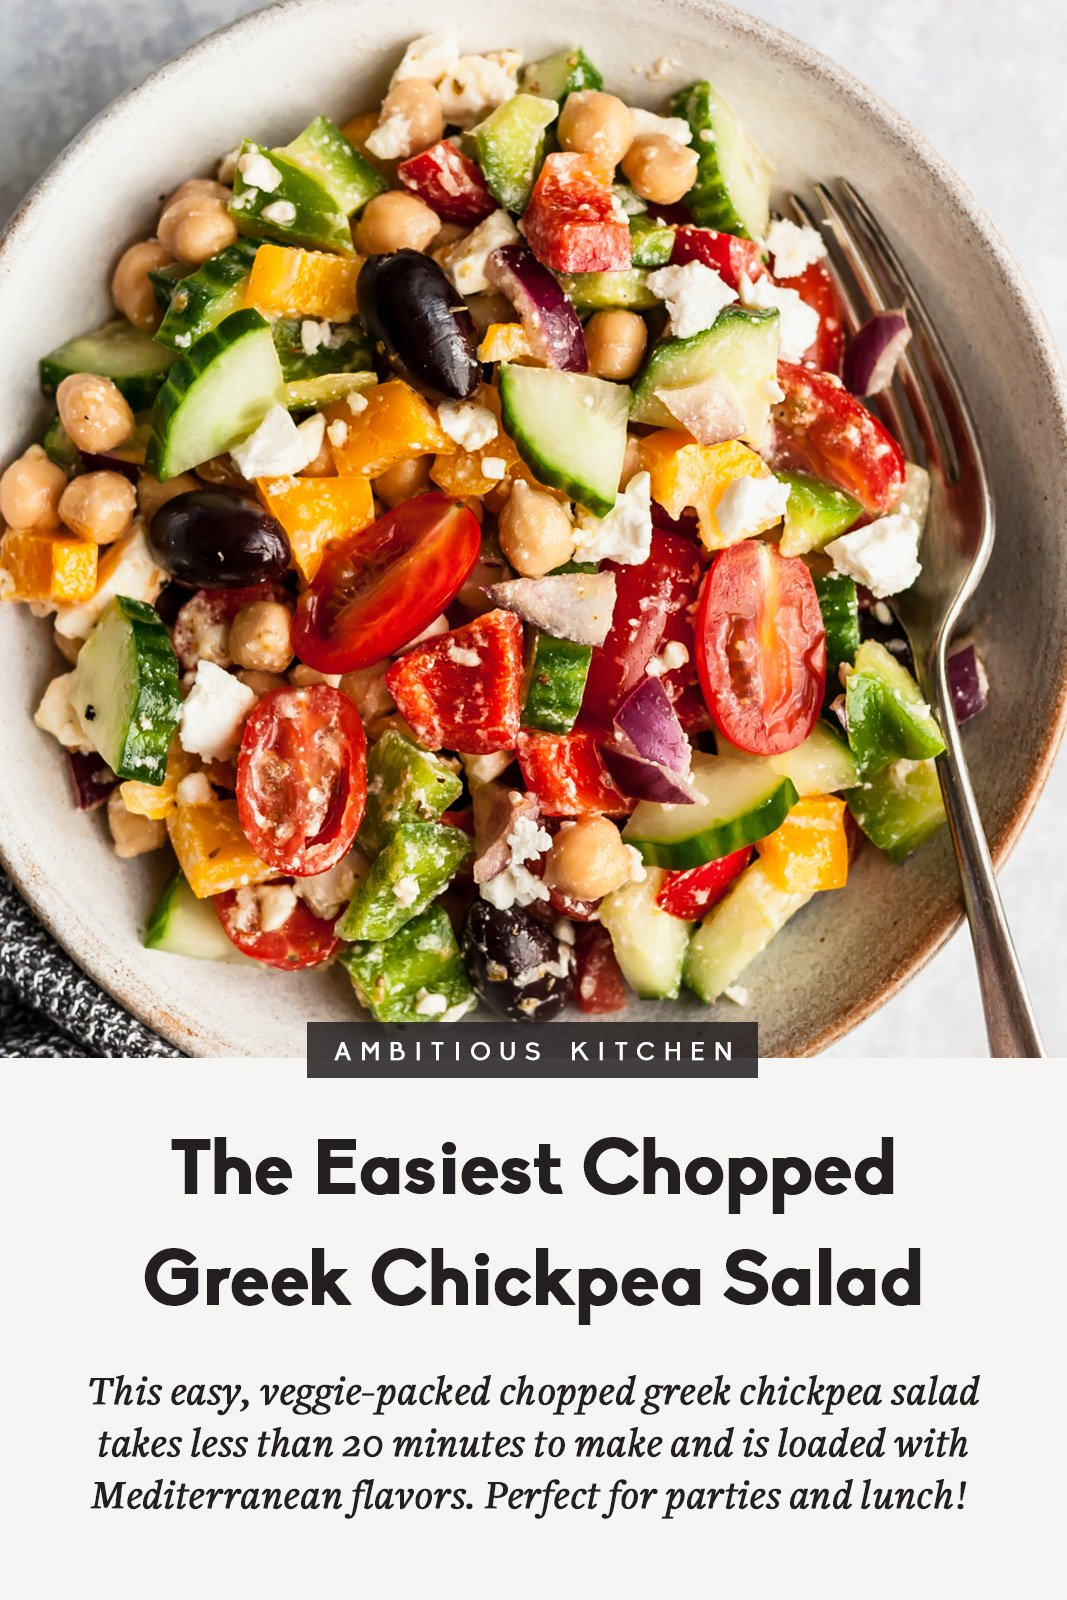 chopped greek chickpea salad in a bowl with a fork and a title underneath